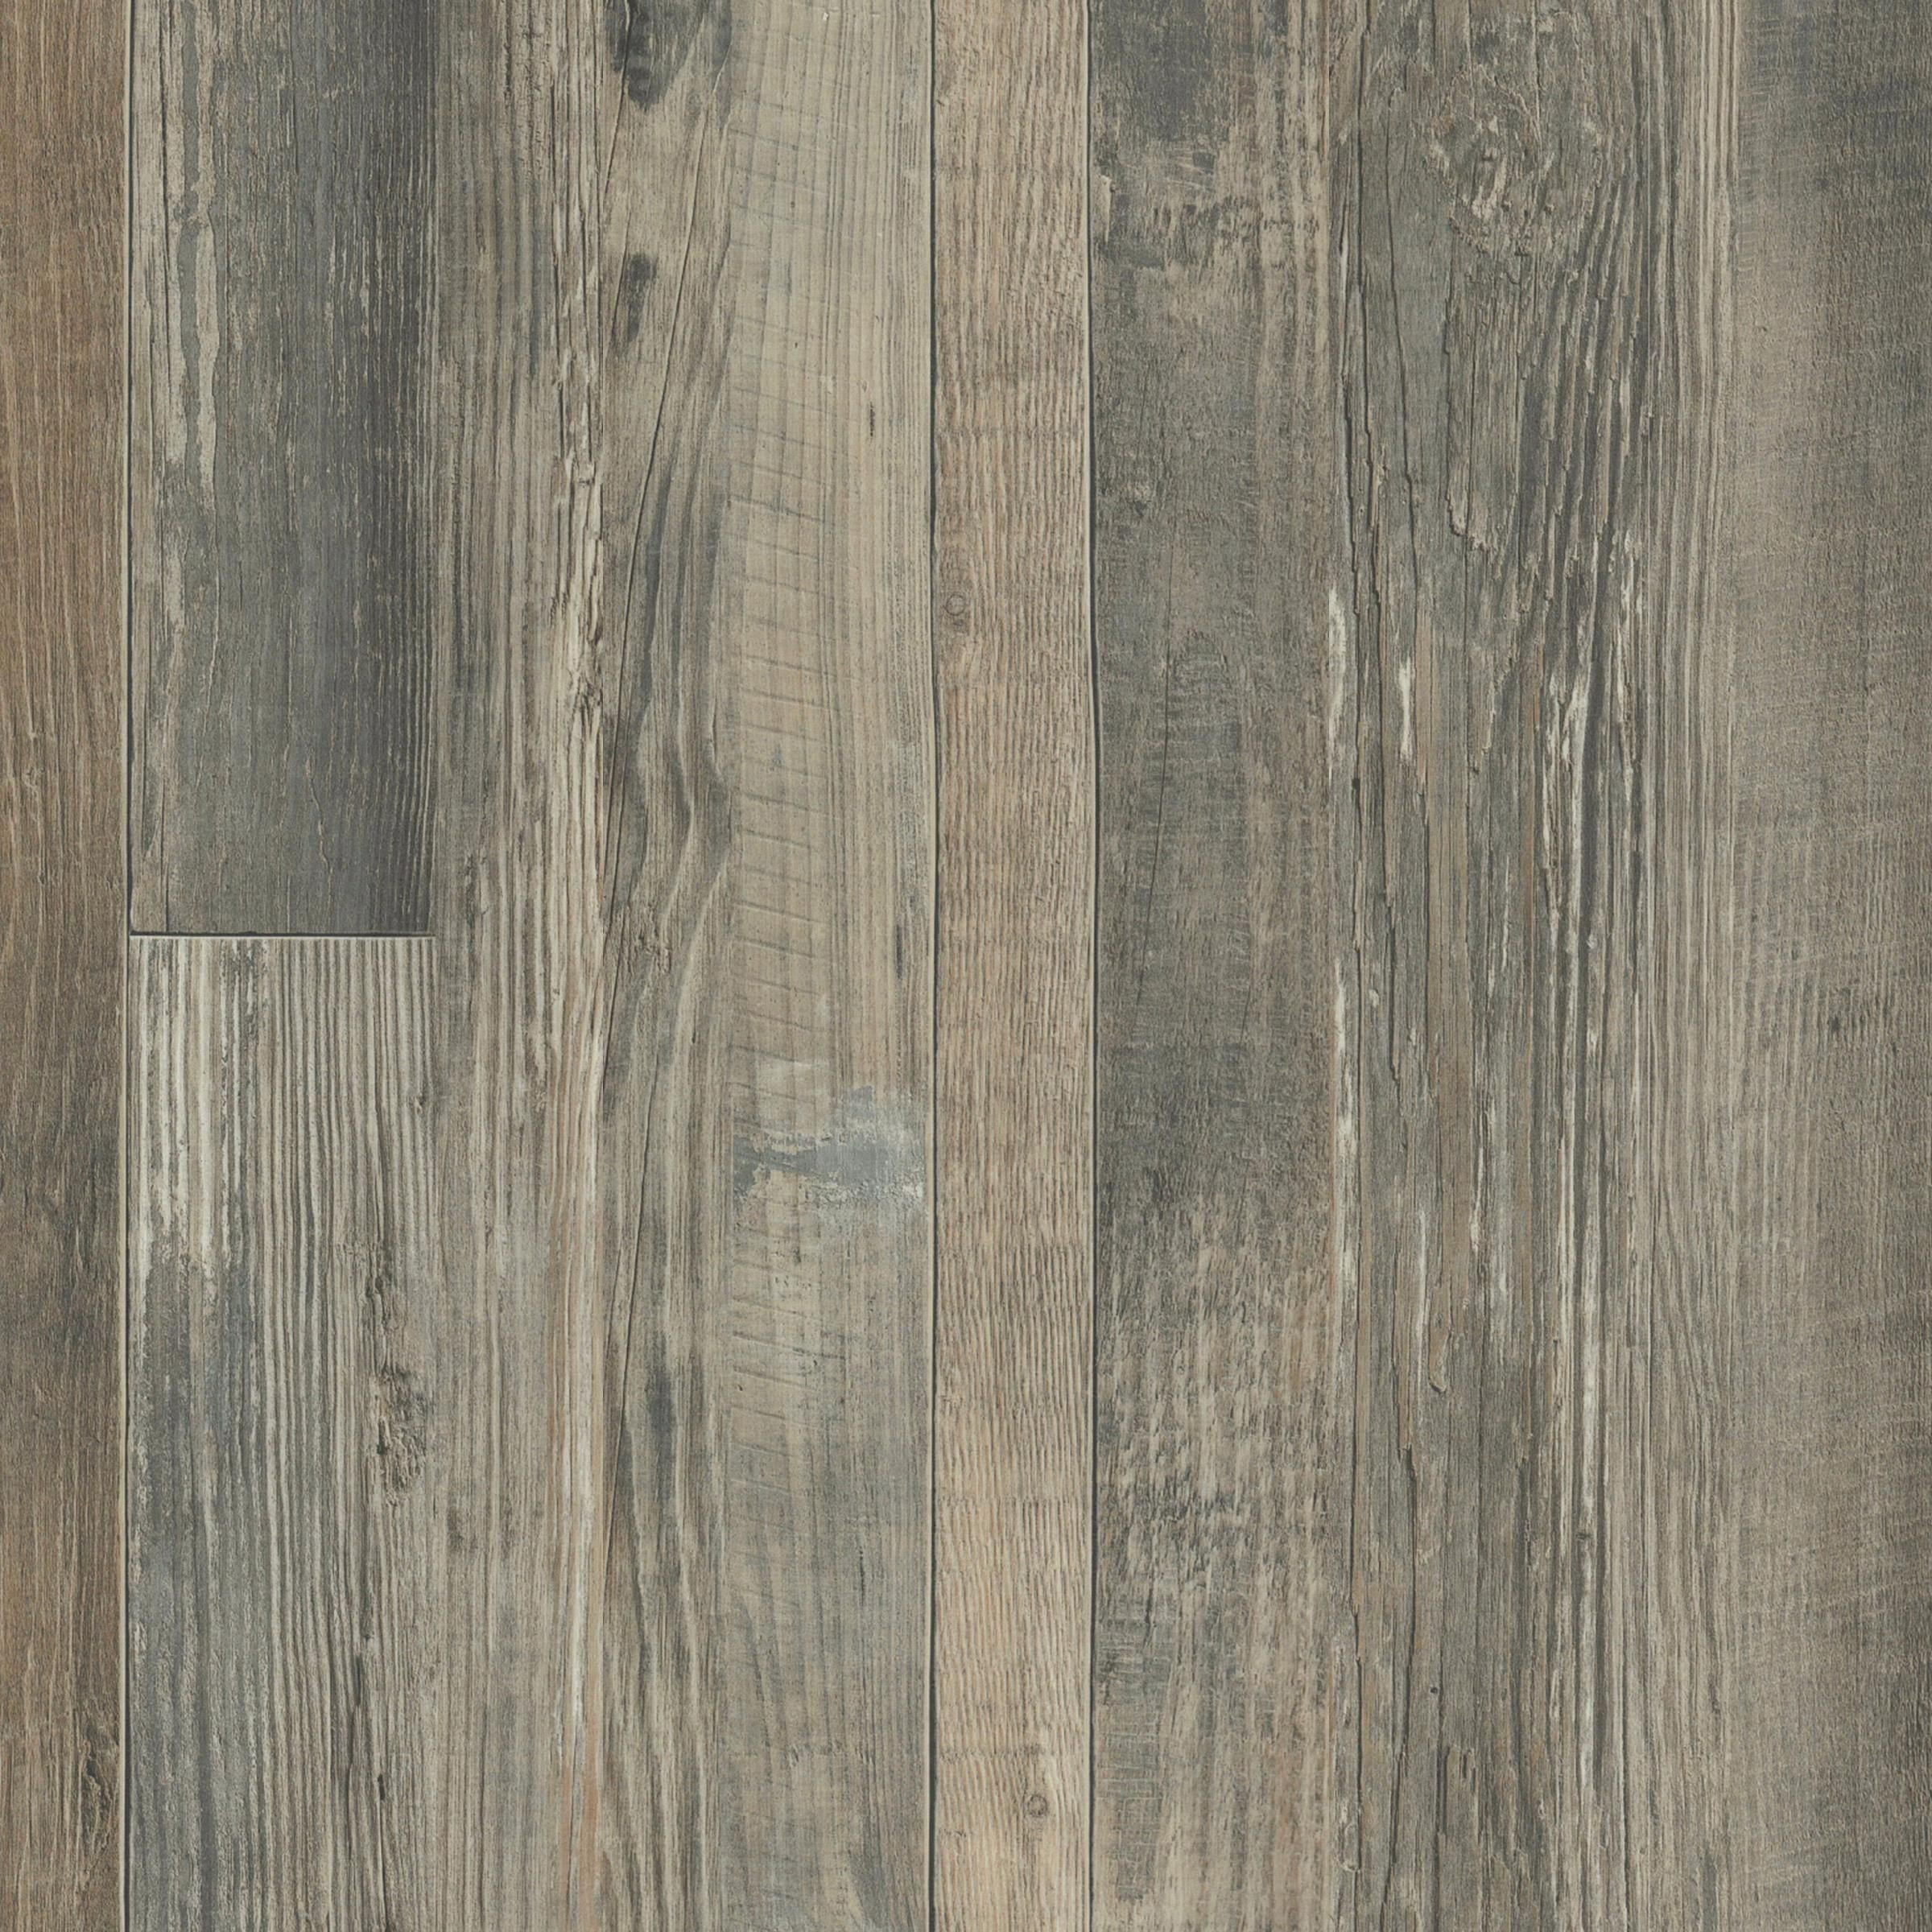 can hand scraped engineered hardwood floors be refinished of dahuacctvth com page 71 of 75 flooring decoration ideas page 71 for hand scraped vinyl plank flooring